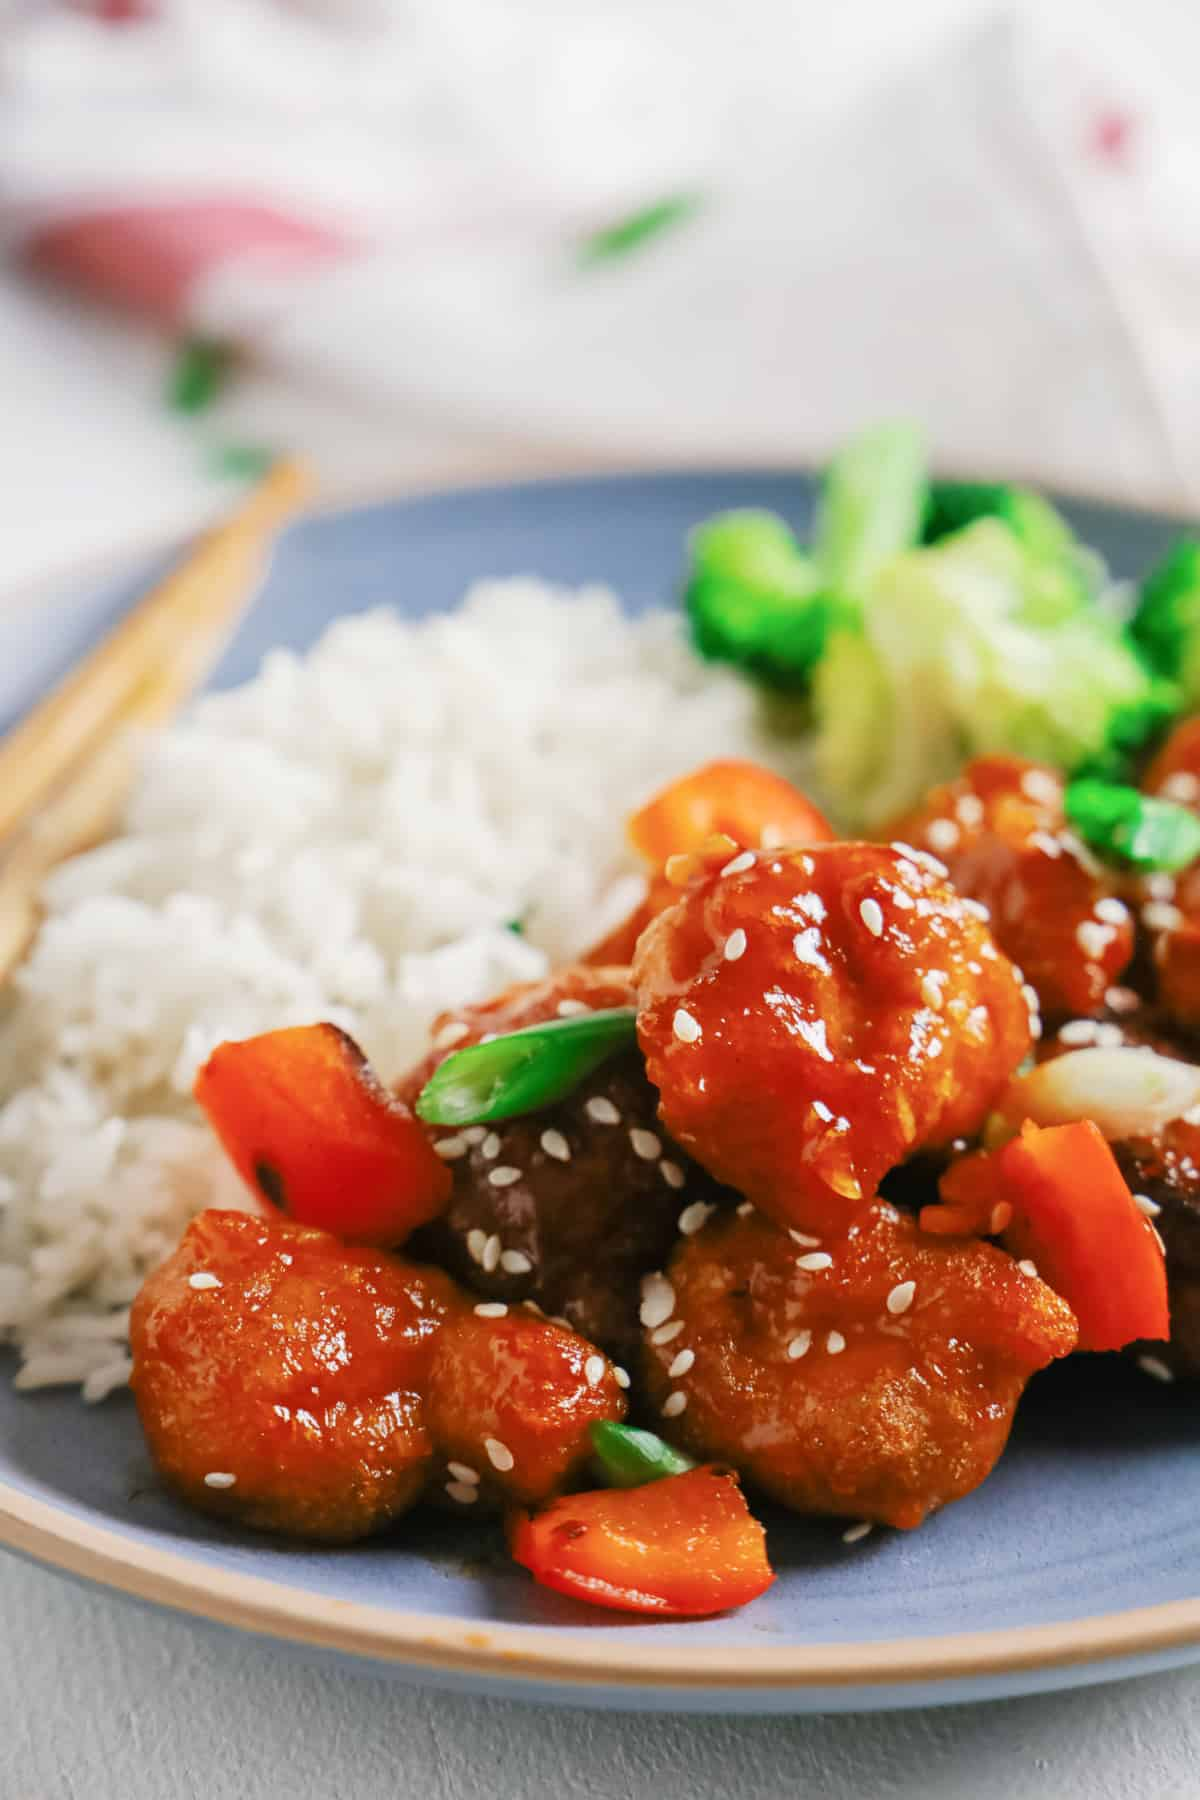 Sweet and Sour Pork on a plate with rice and broccoli